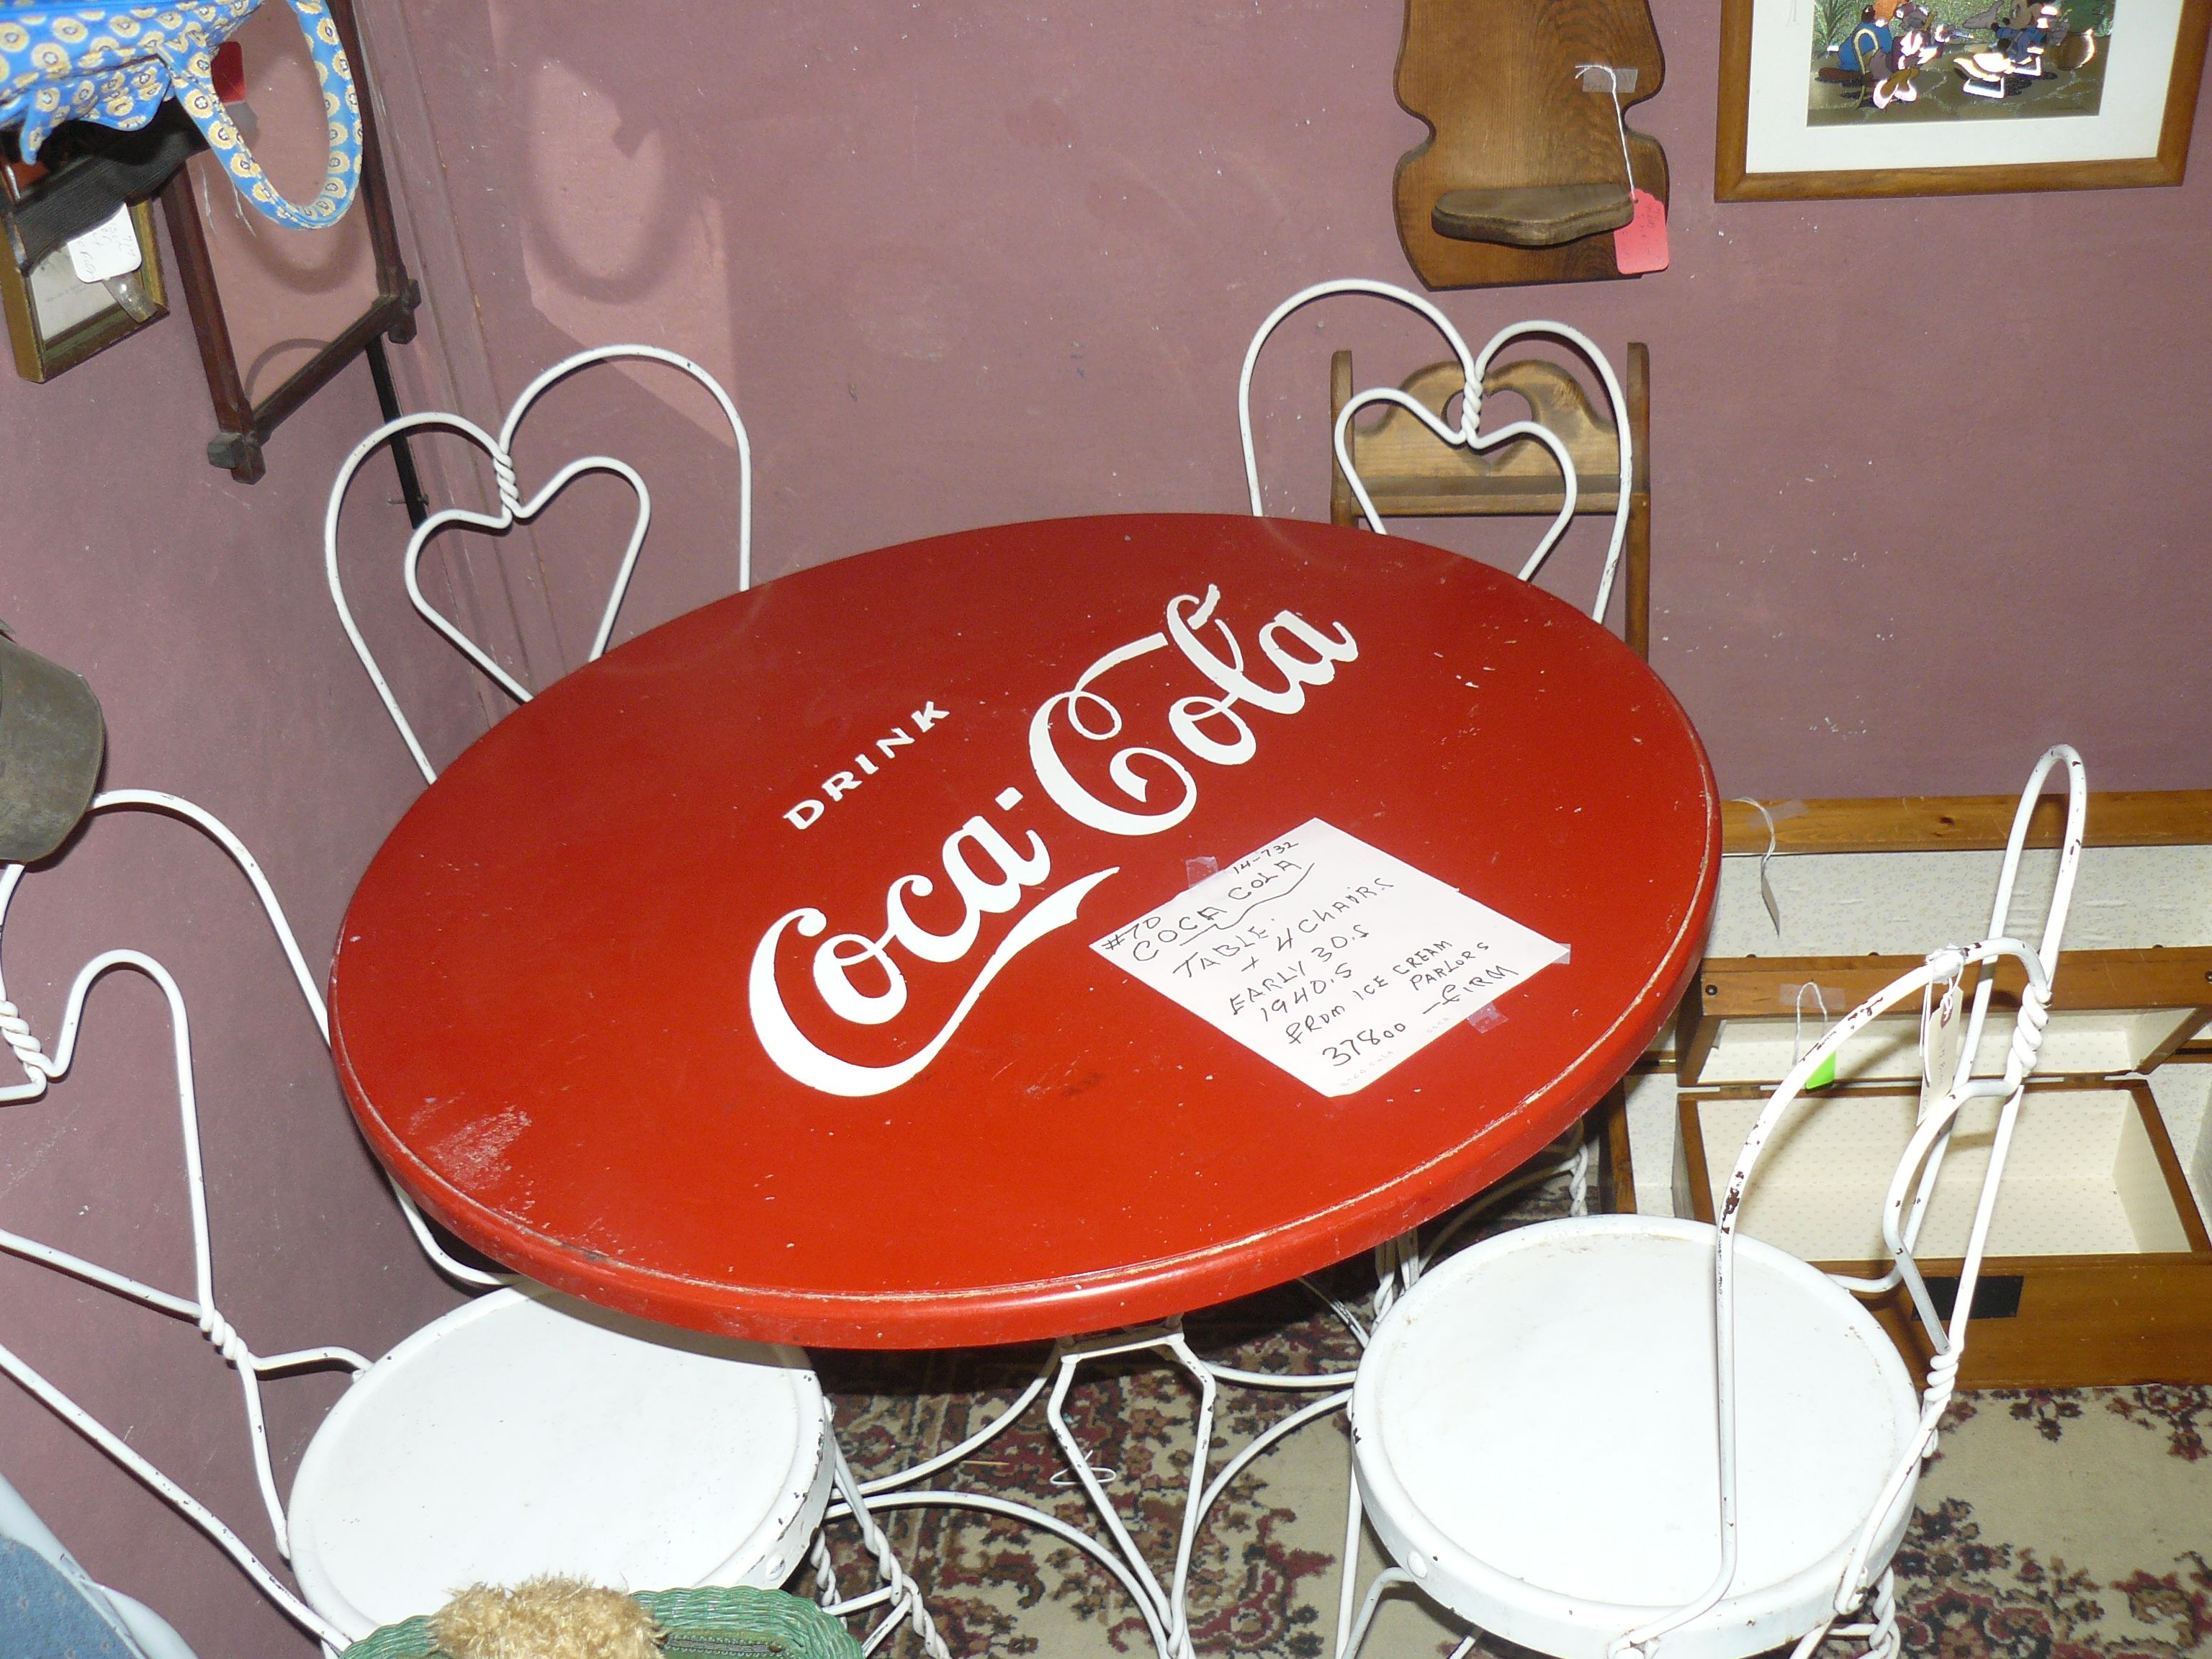 Fabulous classic Coca Cola table and chairs Ice cream parlor set